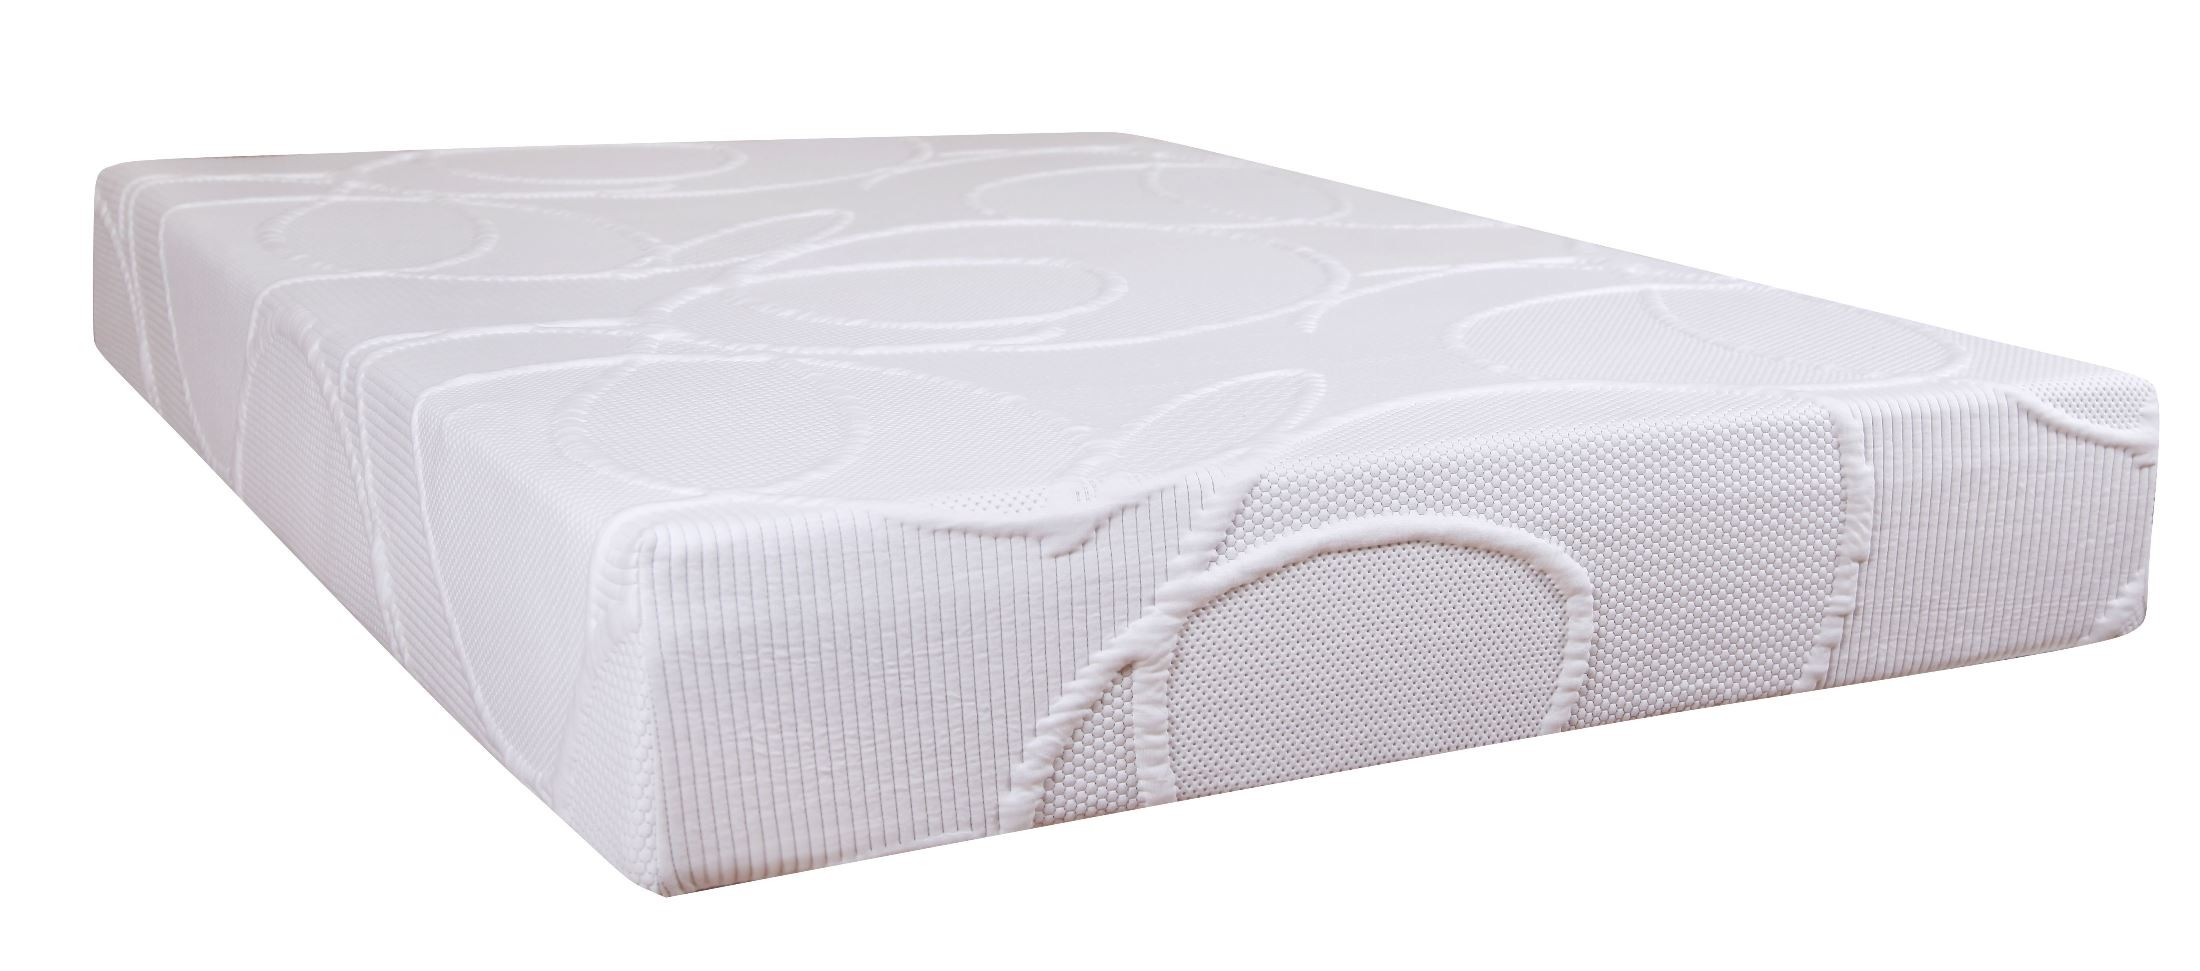 Polaris 10 Memory Foam Full Size Mattress From Klaussner Polarisffmat Coleman Furniture